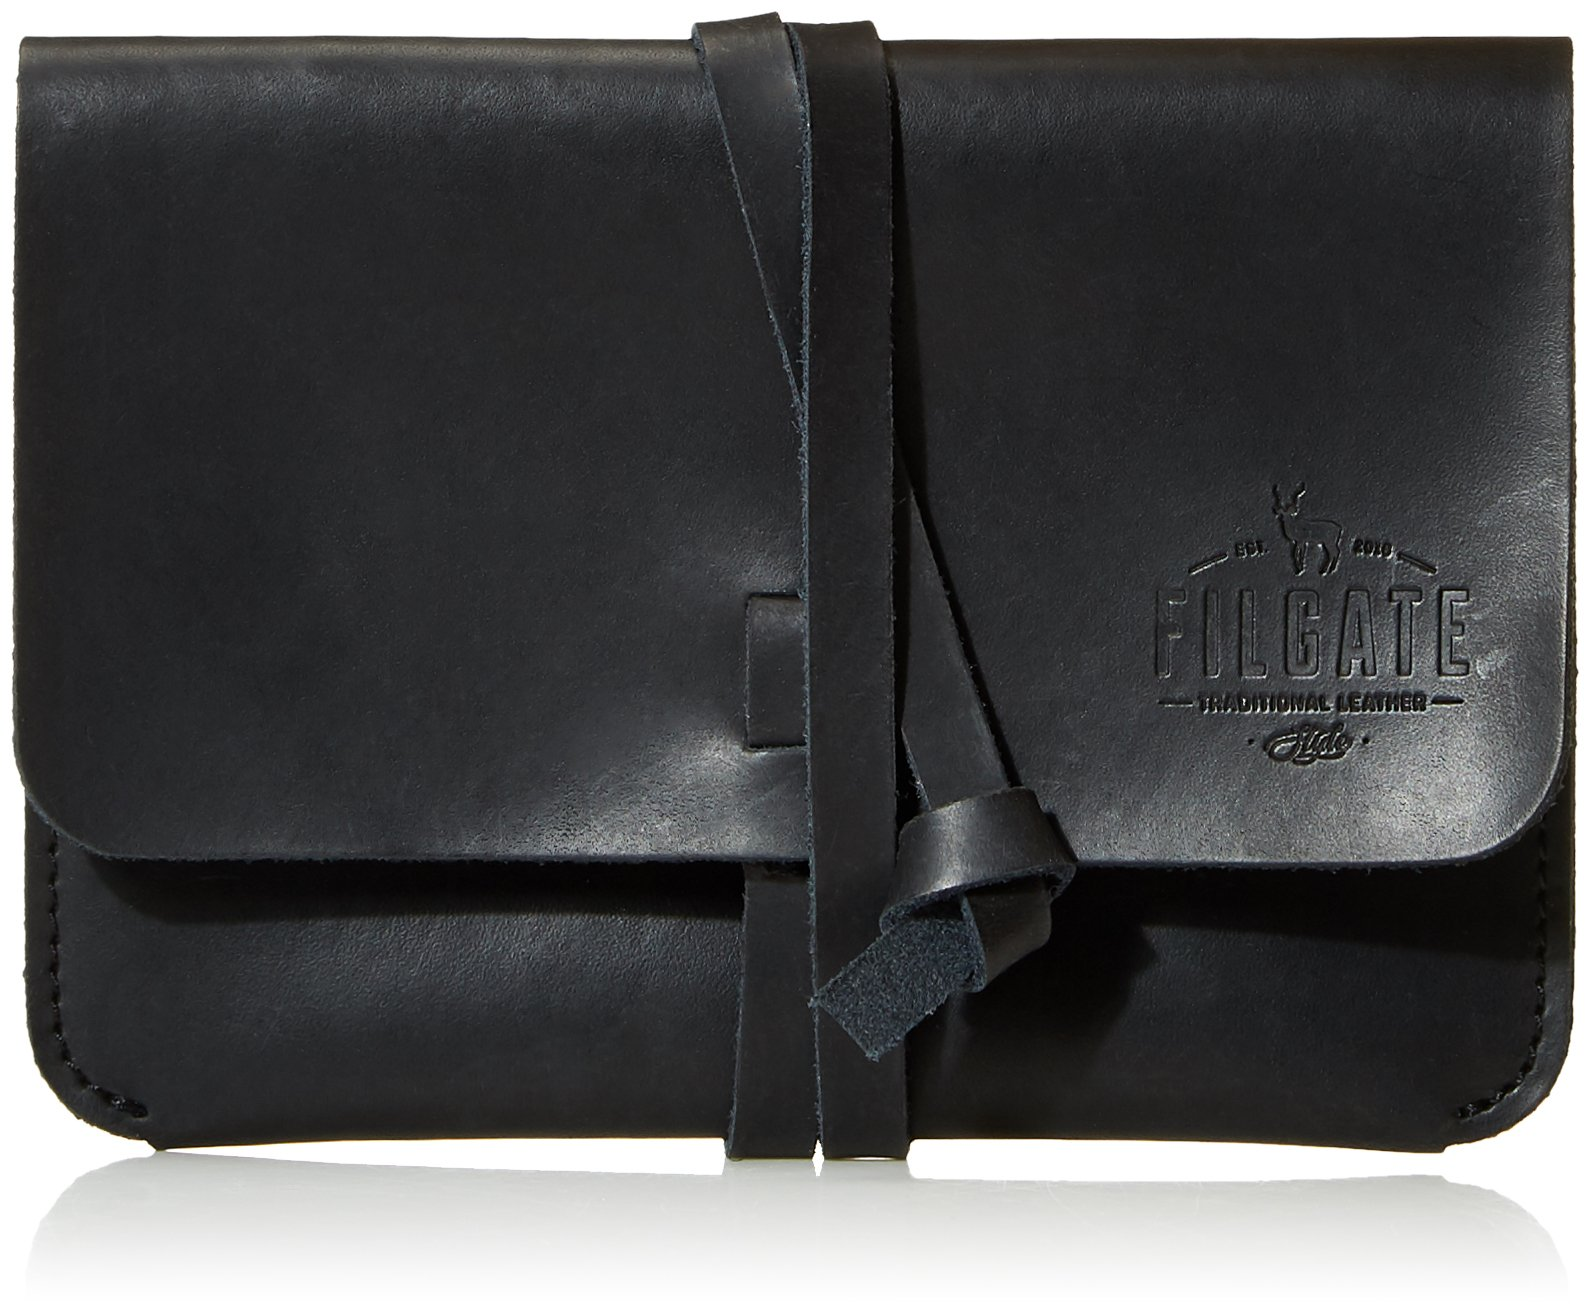 Filgate Leather Passport Holder & Travel Wallet Secure Organizer for Credit Cards, Cash with Passport Leather Strap Black